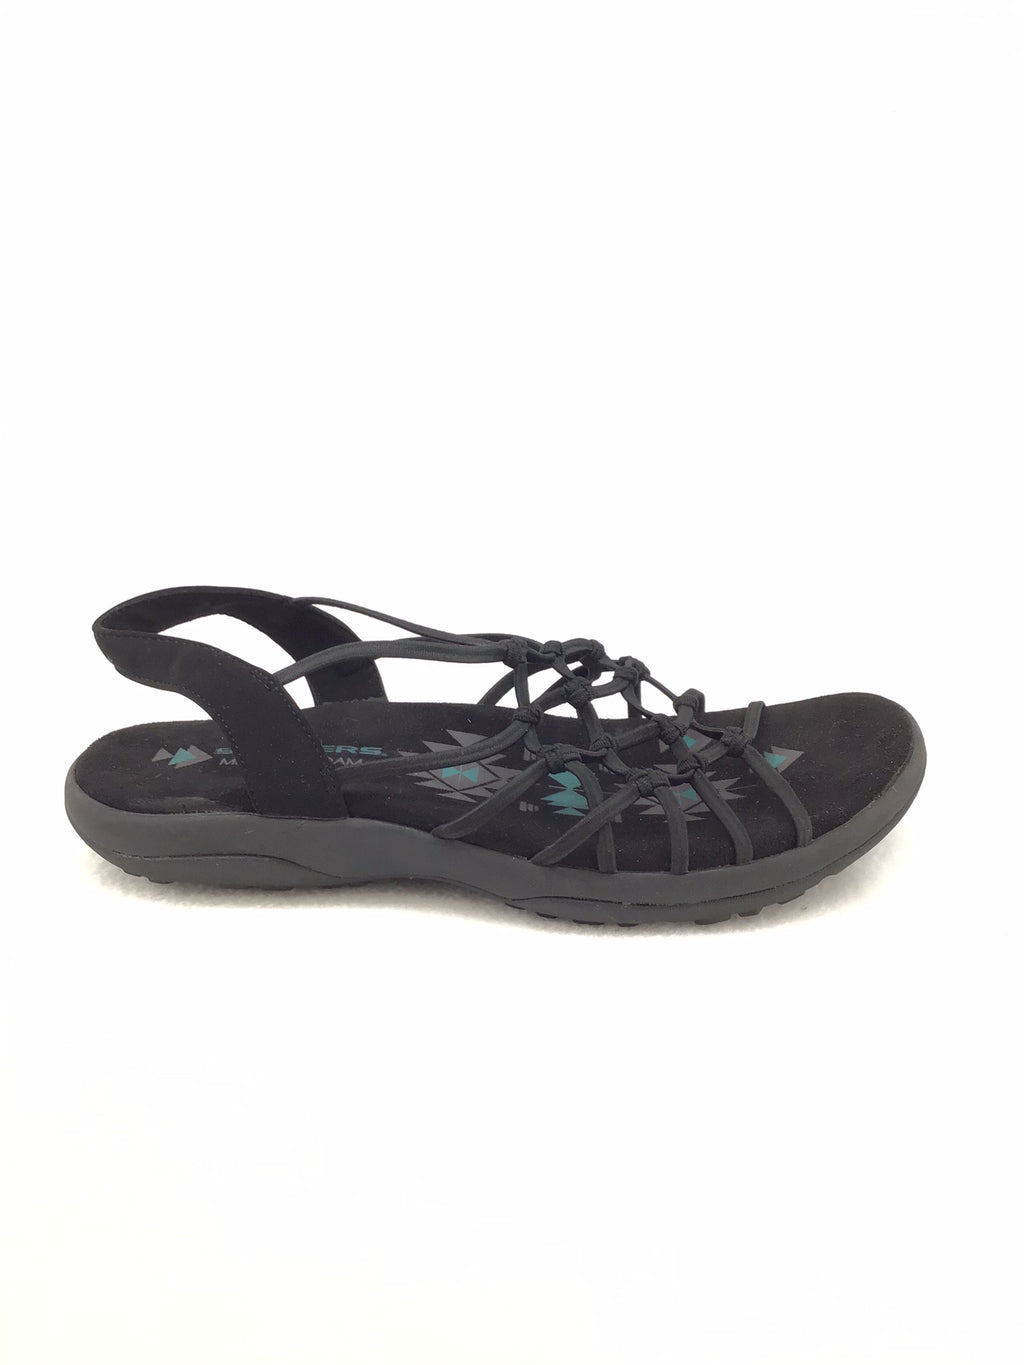 Skechers Memory Foam Sandals Size 8